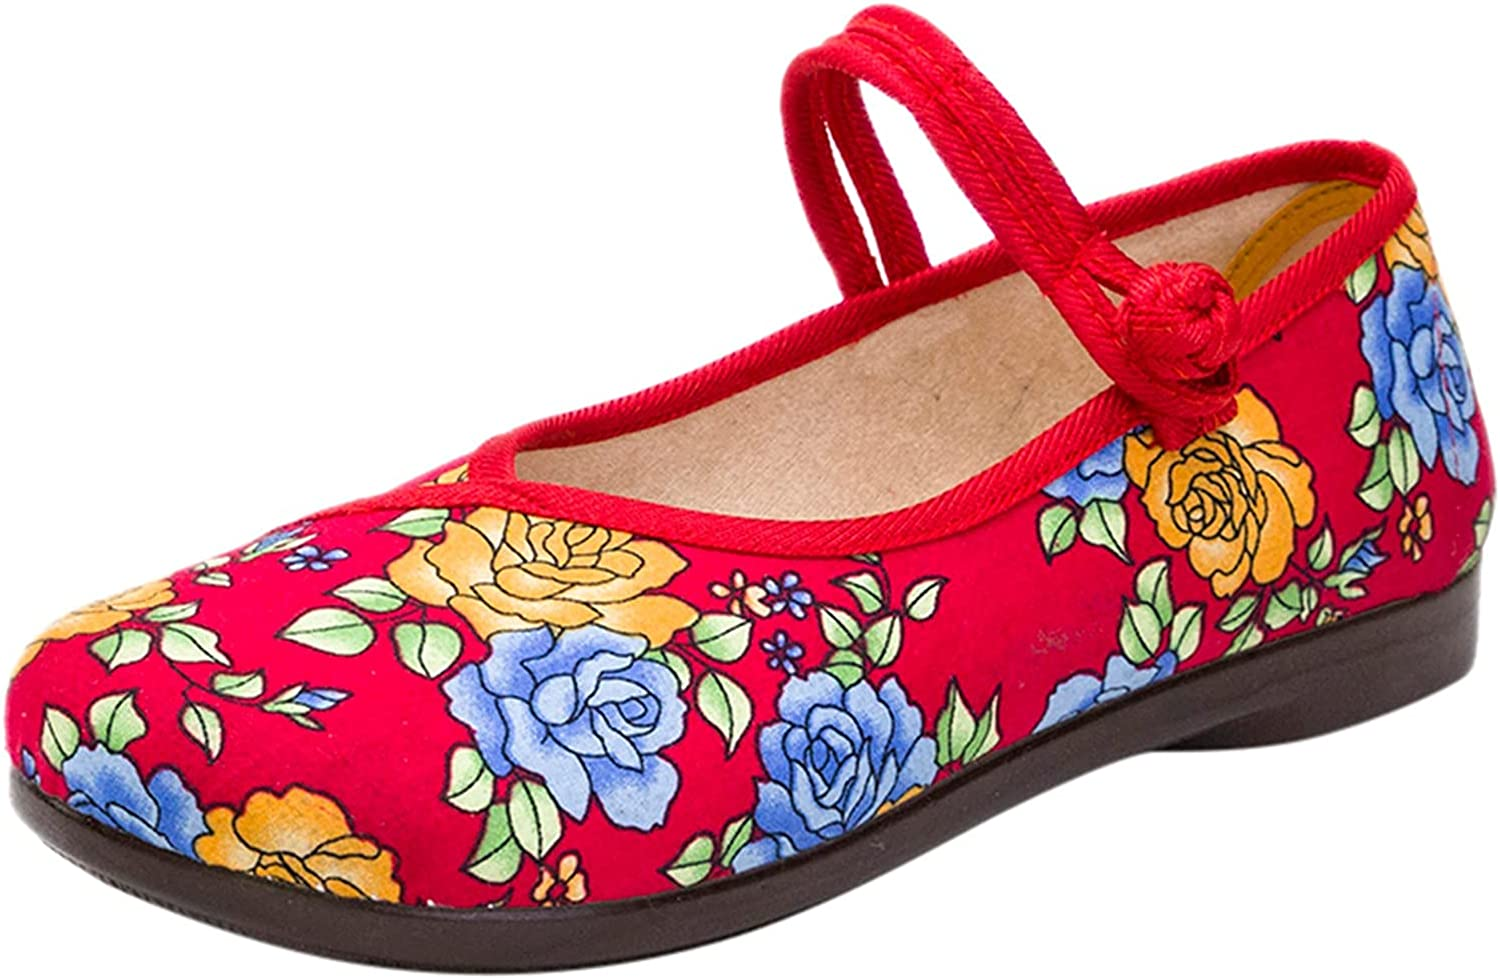 Women Single Shoes Lazy Peas Shoes Casual Slip-On Wedges Round T